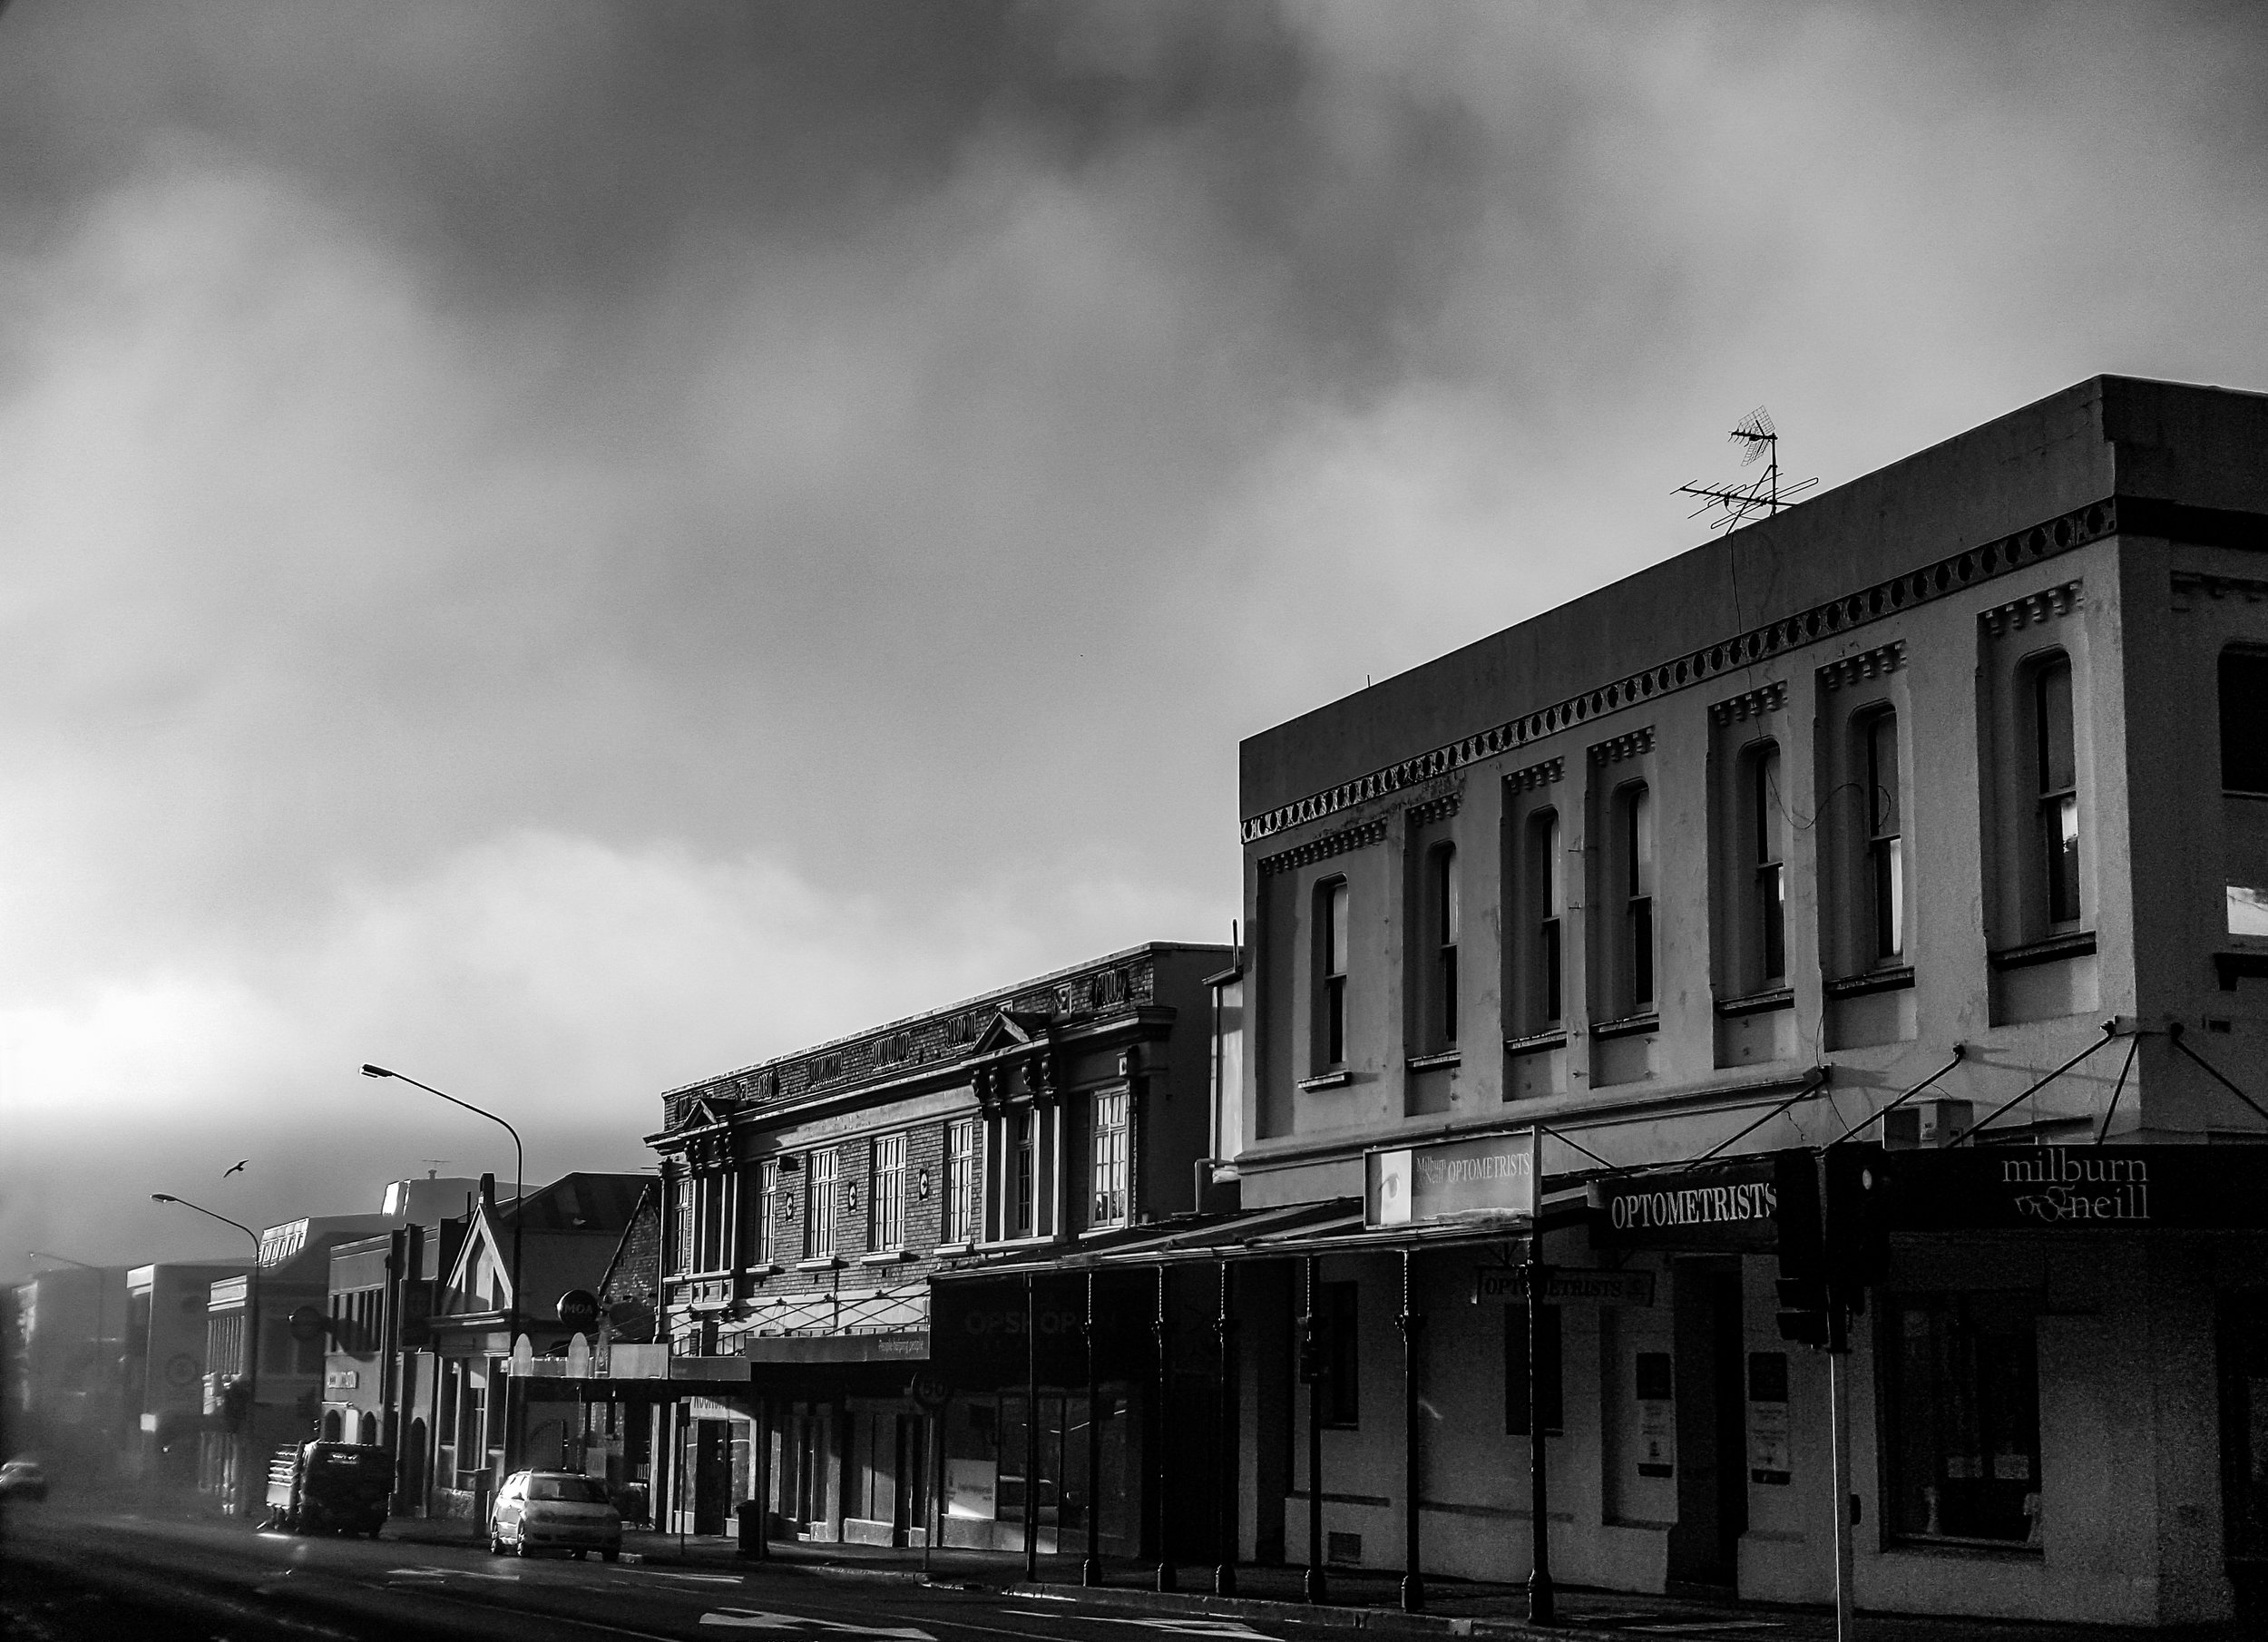 misty clouds over heritage buildings in dunedin black and white